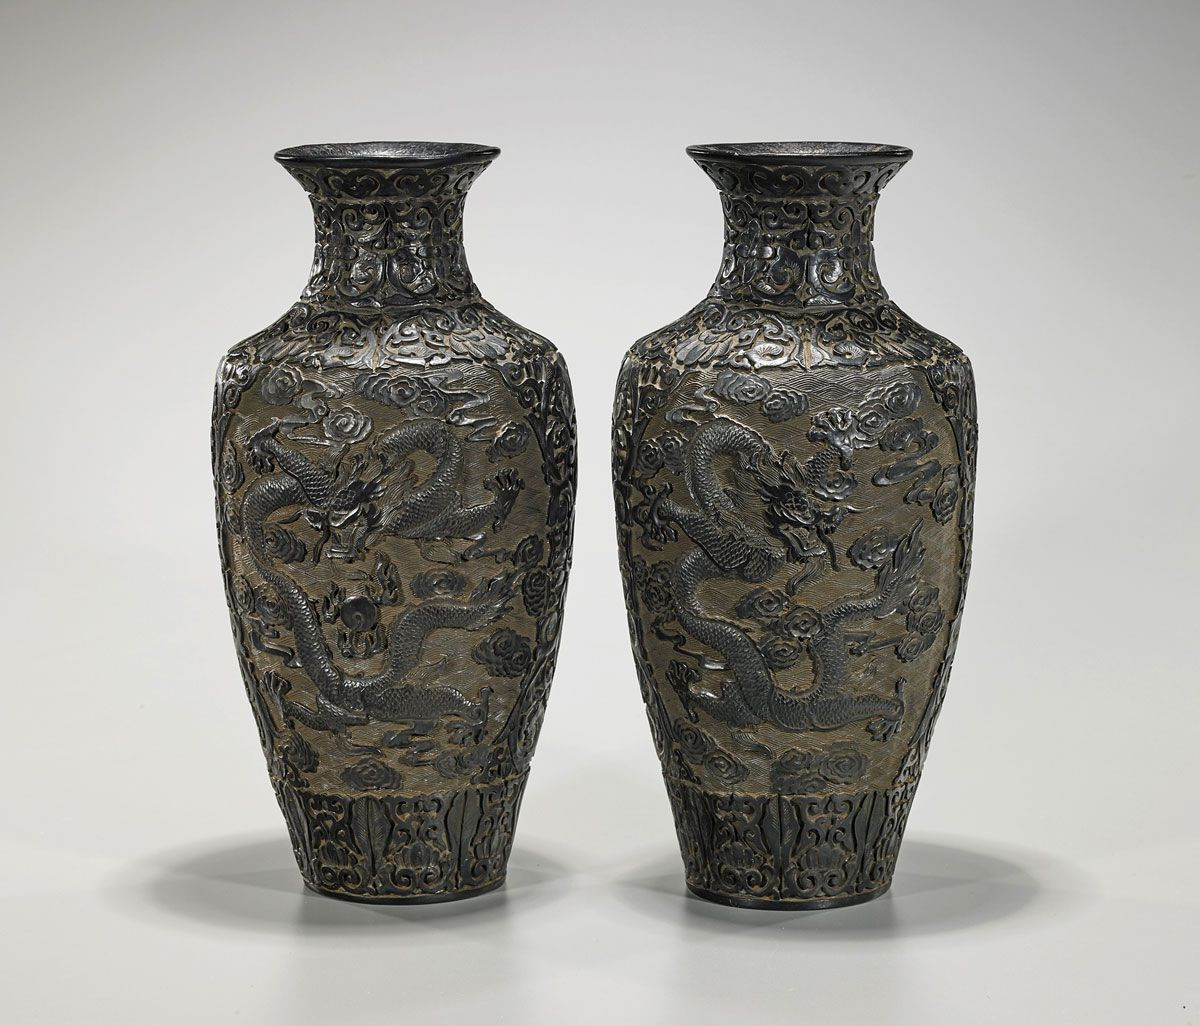 Chinese Lacquer Vase Of Pair Of Chinese Lacquer Like Vases Each Of Ovoid form with Flaring Inside Pair Of Chinese Lacquer Like Vases Each Of Ovoid form with Flaring Rim Showing Design Of Celestial Dragons and Scrolling Flora In Relief Qianlong Mark to